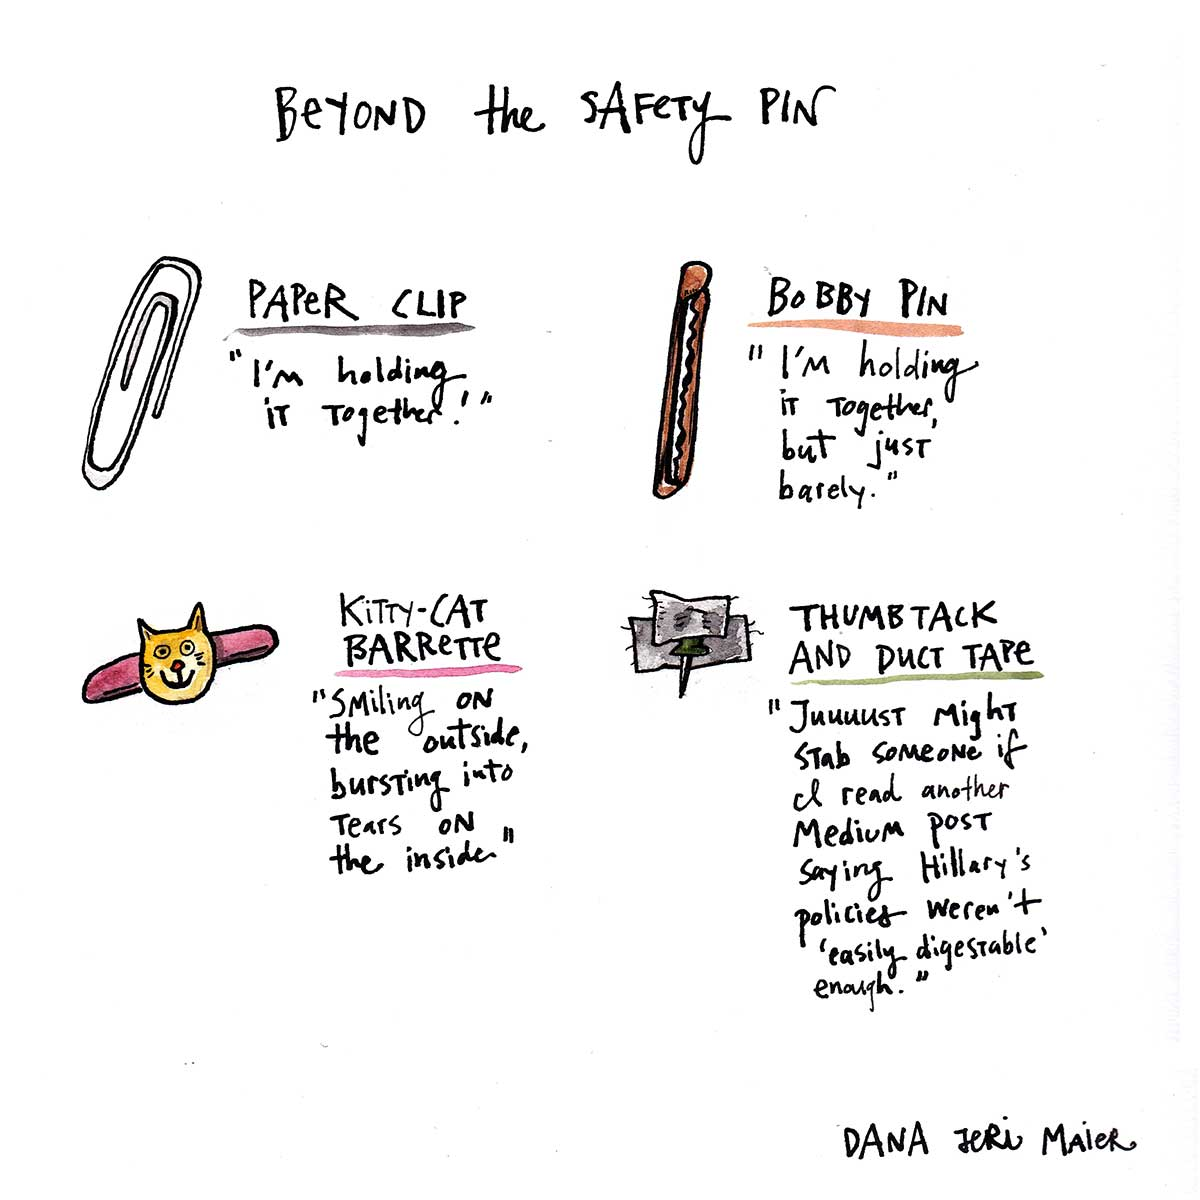 Beyond the Safety Pin